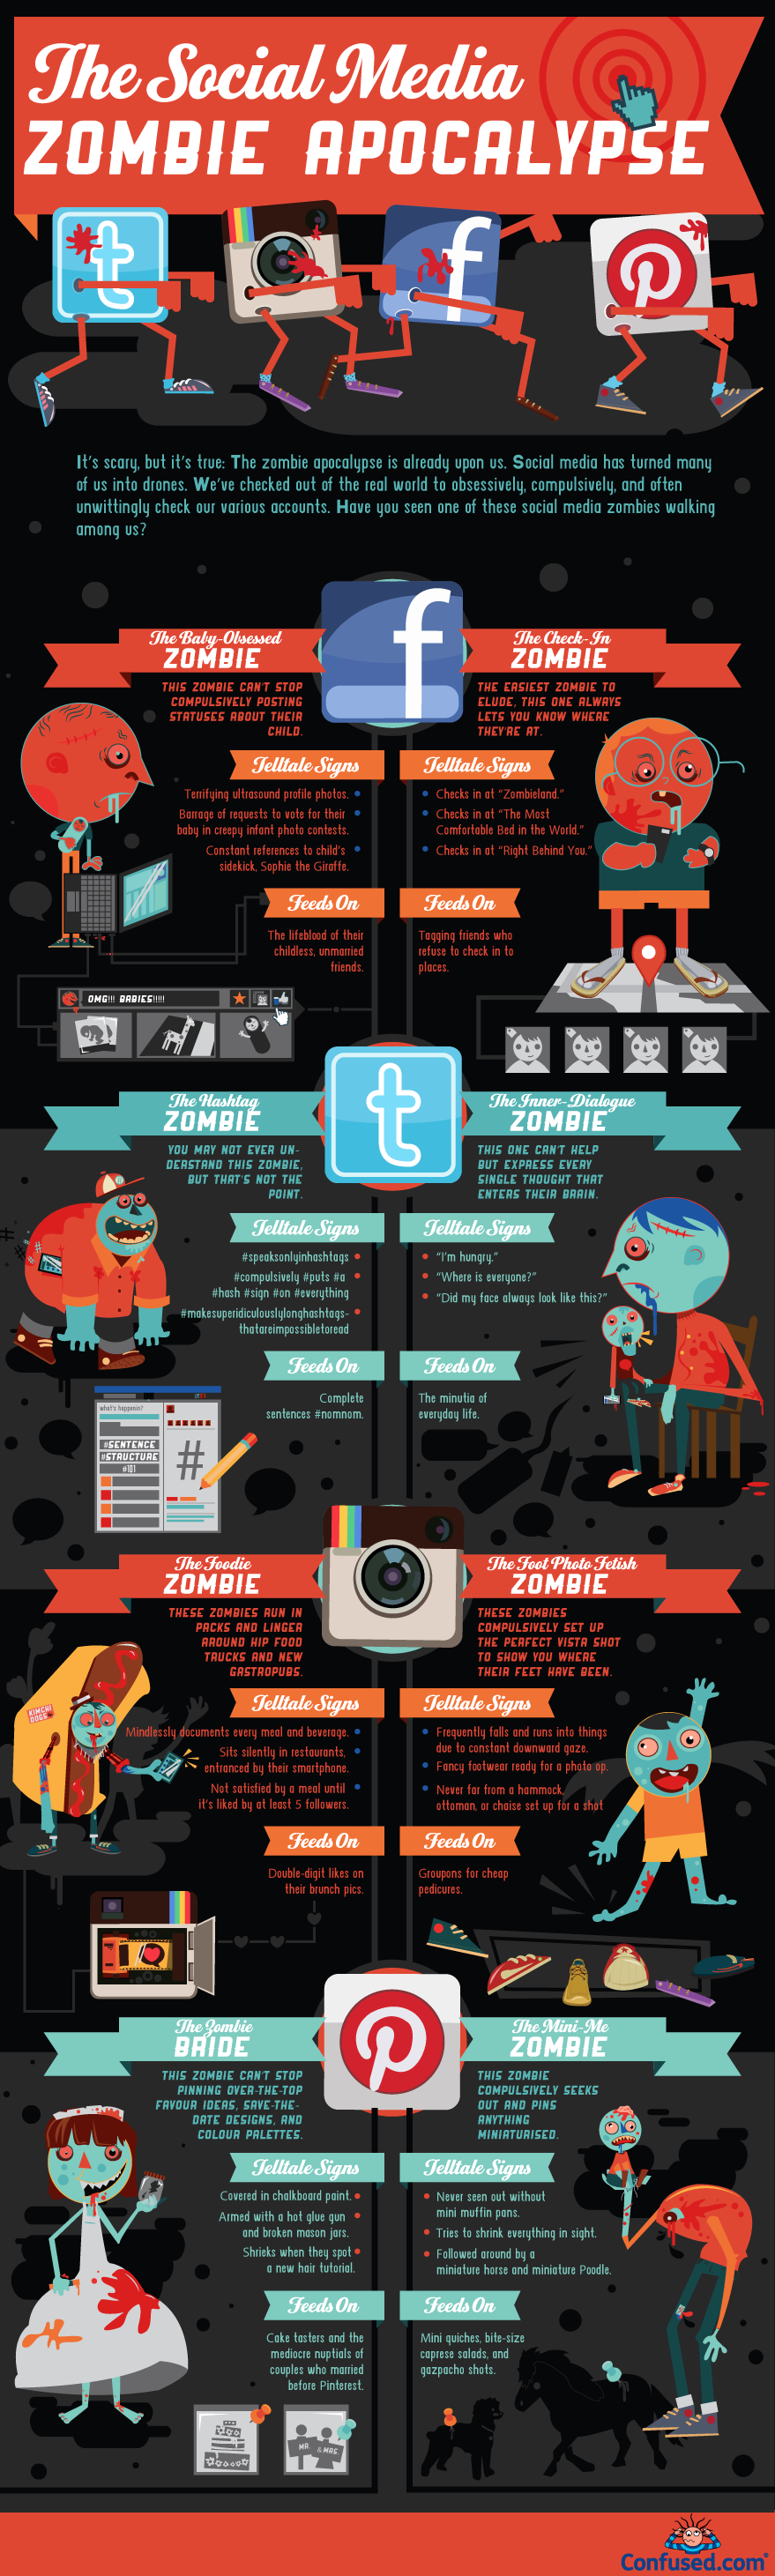 Social Media Zombies-Infographic